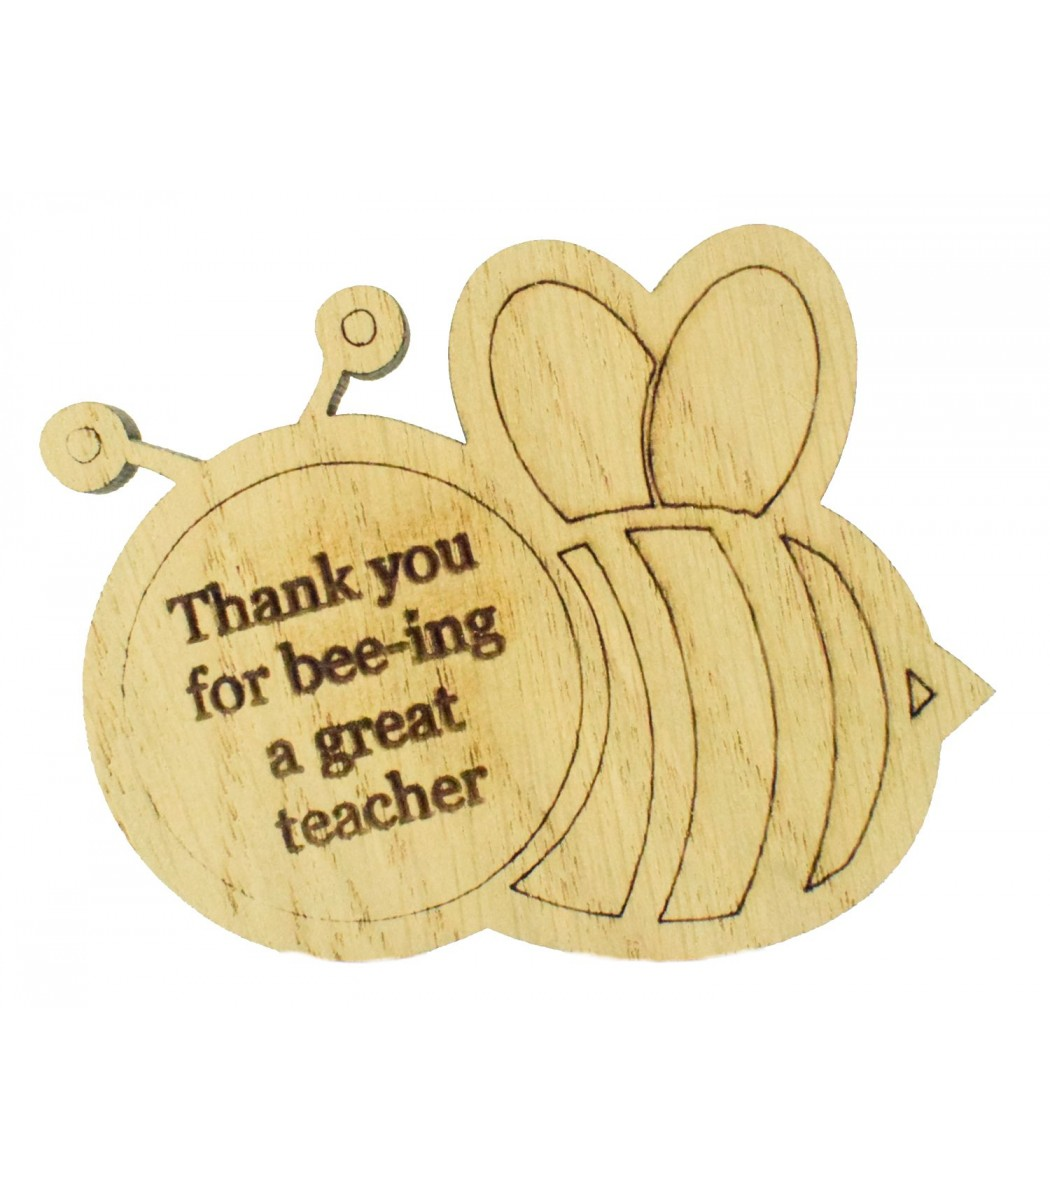 Cute Personalised Wooden Magnet Teacher Gift Bee-ing such a Great Teacher